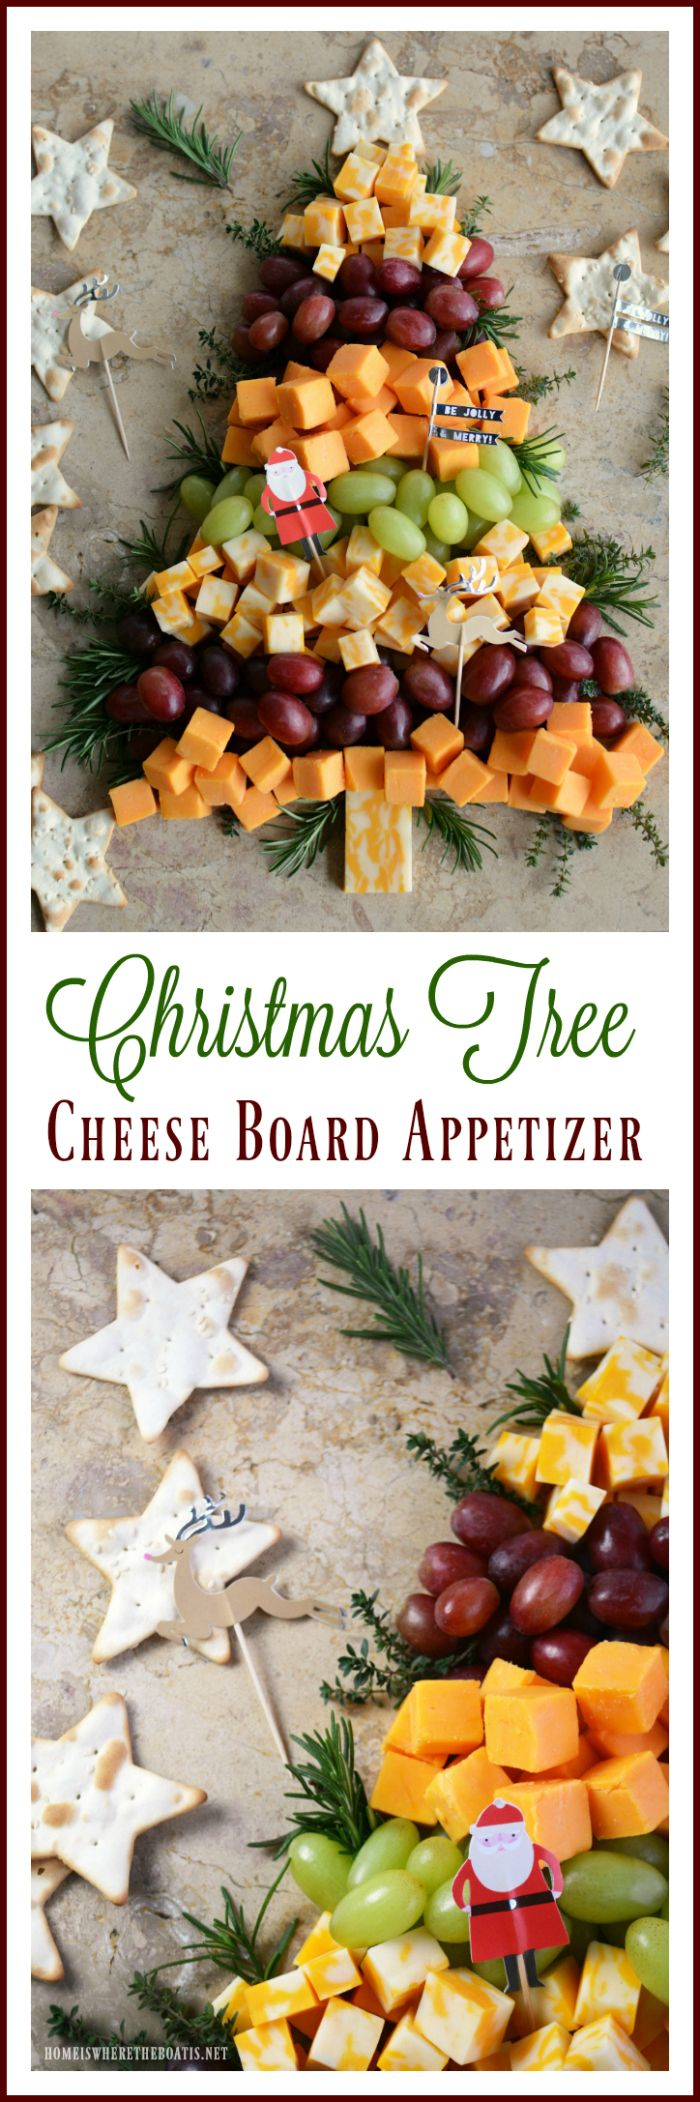 Wonderful Christmas Party Appetizer Ideas Part - 9: Easy Holiday Appetizer: Christmas Tree Cheese Board |  Homeiswheretheboatis.net #party